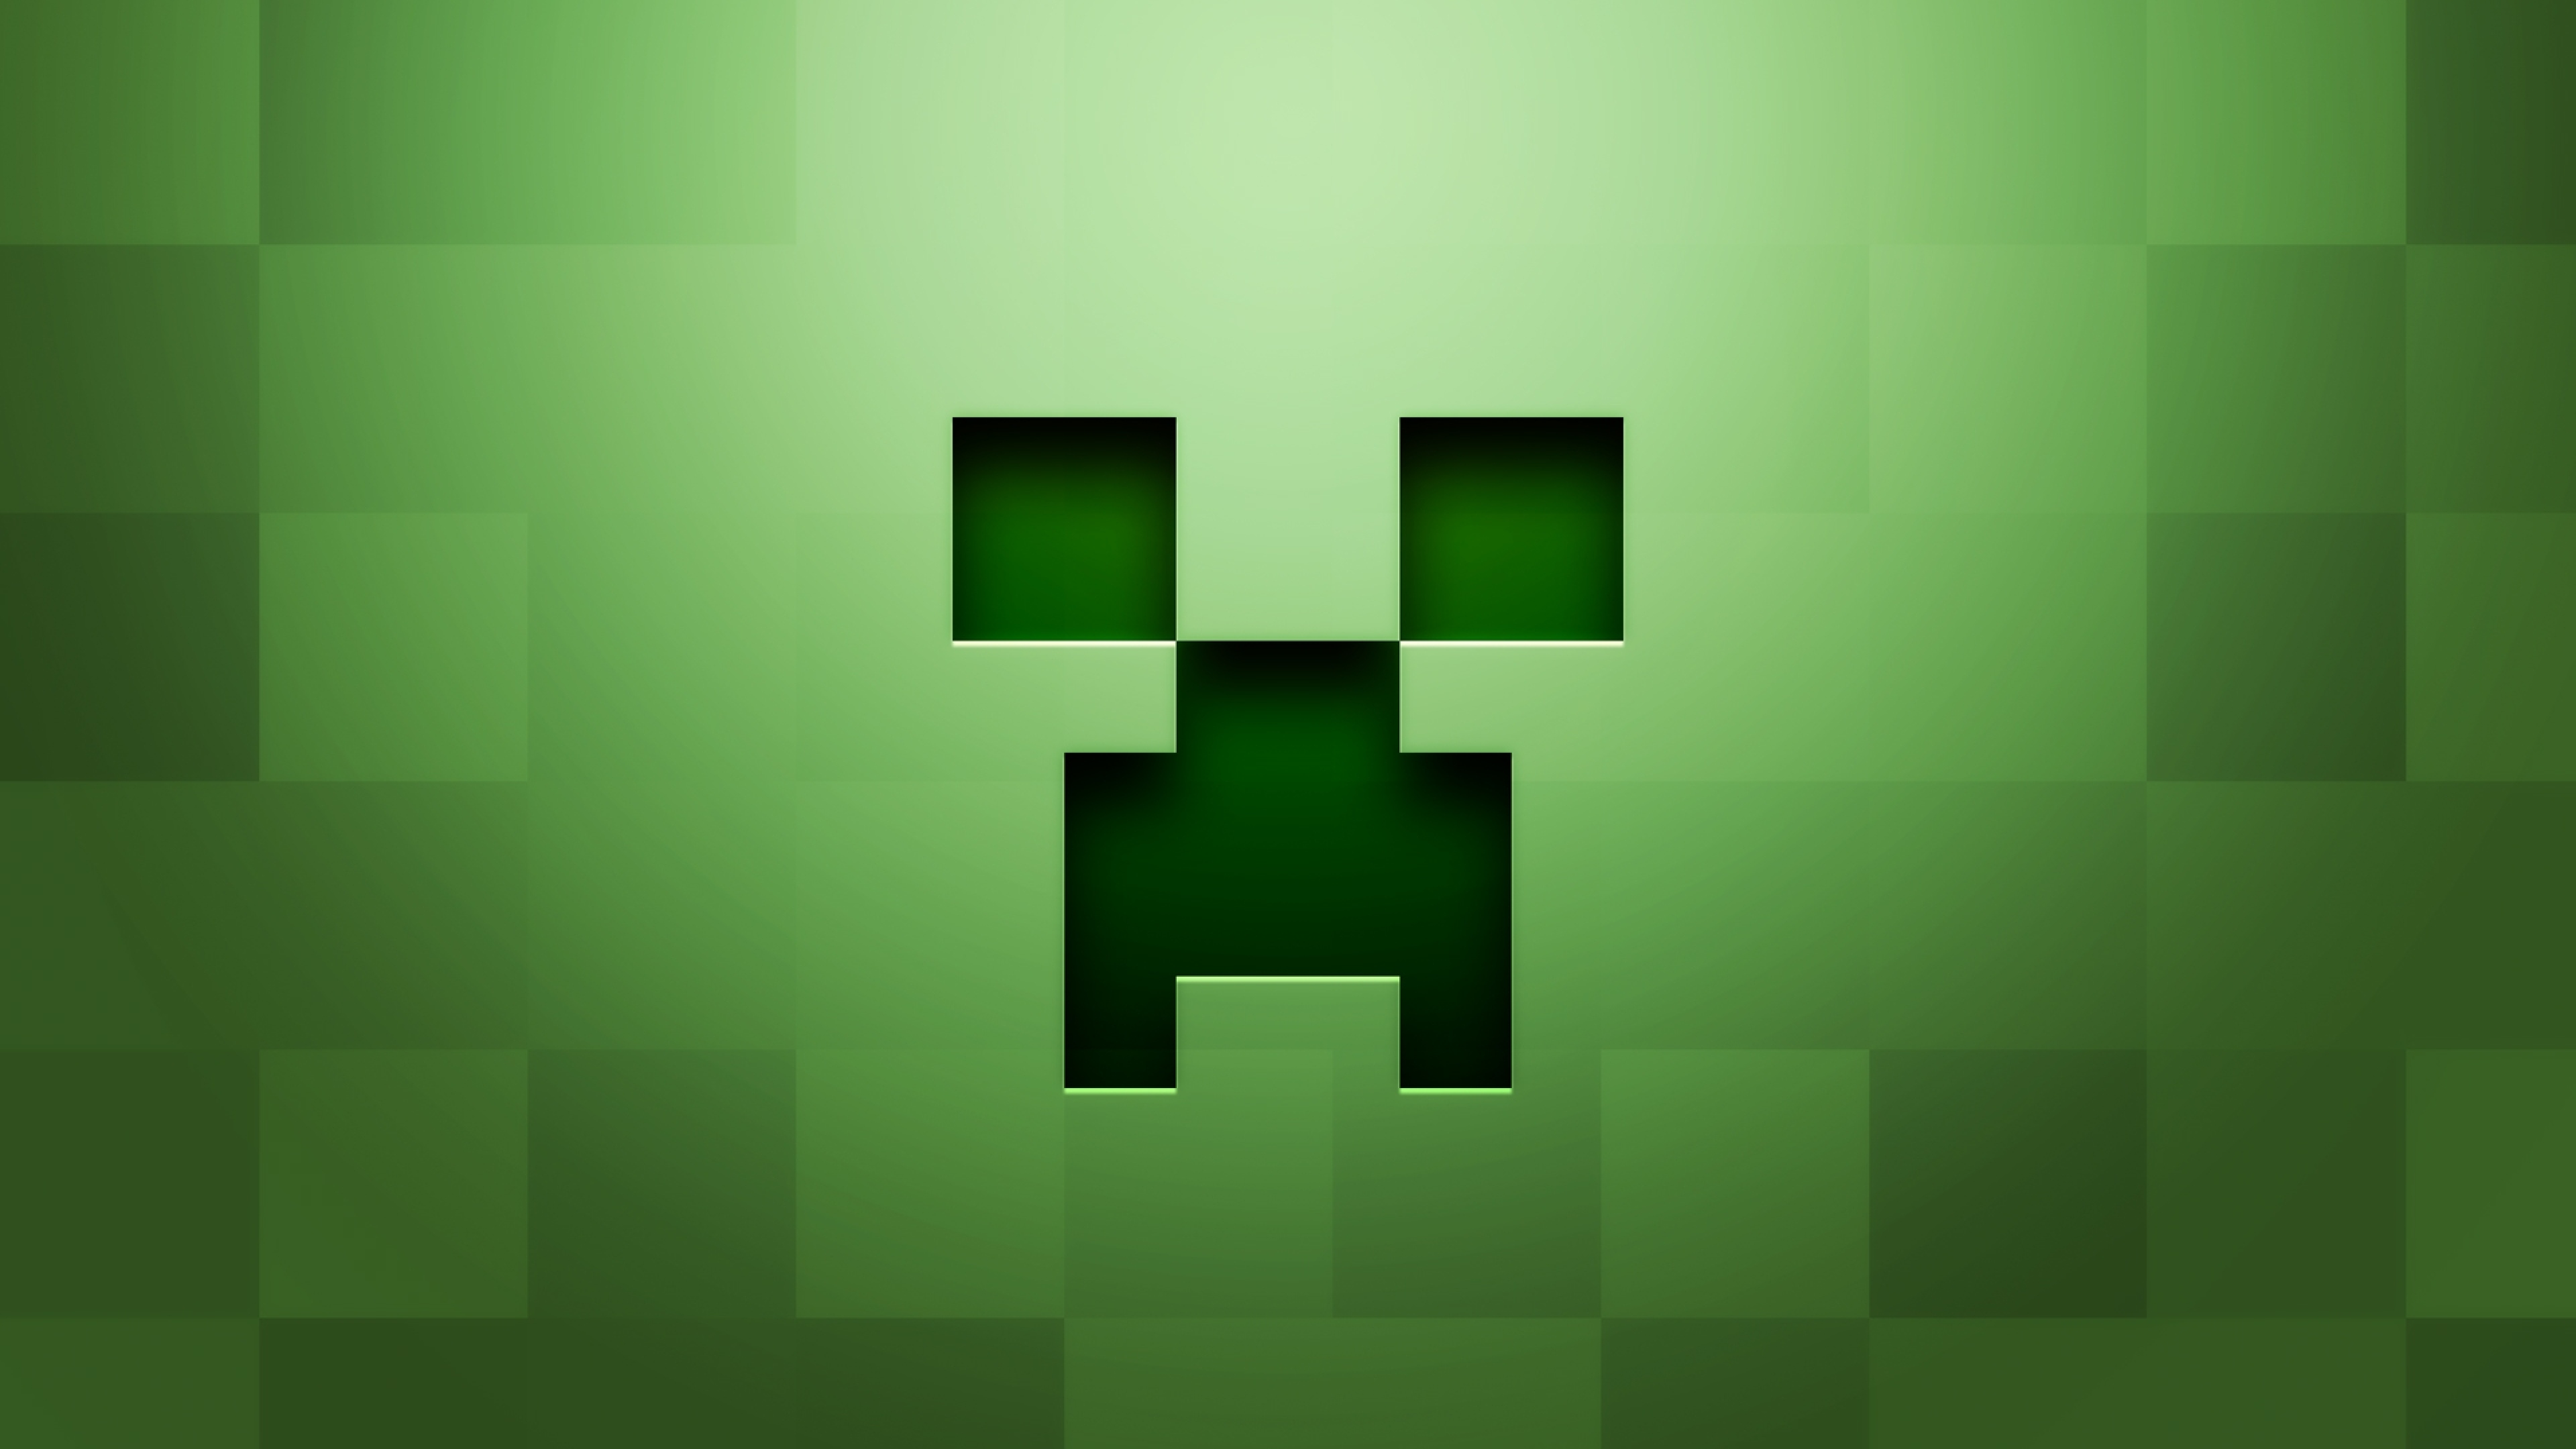 Minecraft wallpaper and background image 1366x768 id333369 video game minecraft mojang creeper minecraft wallpaper voltagebd Image collections